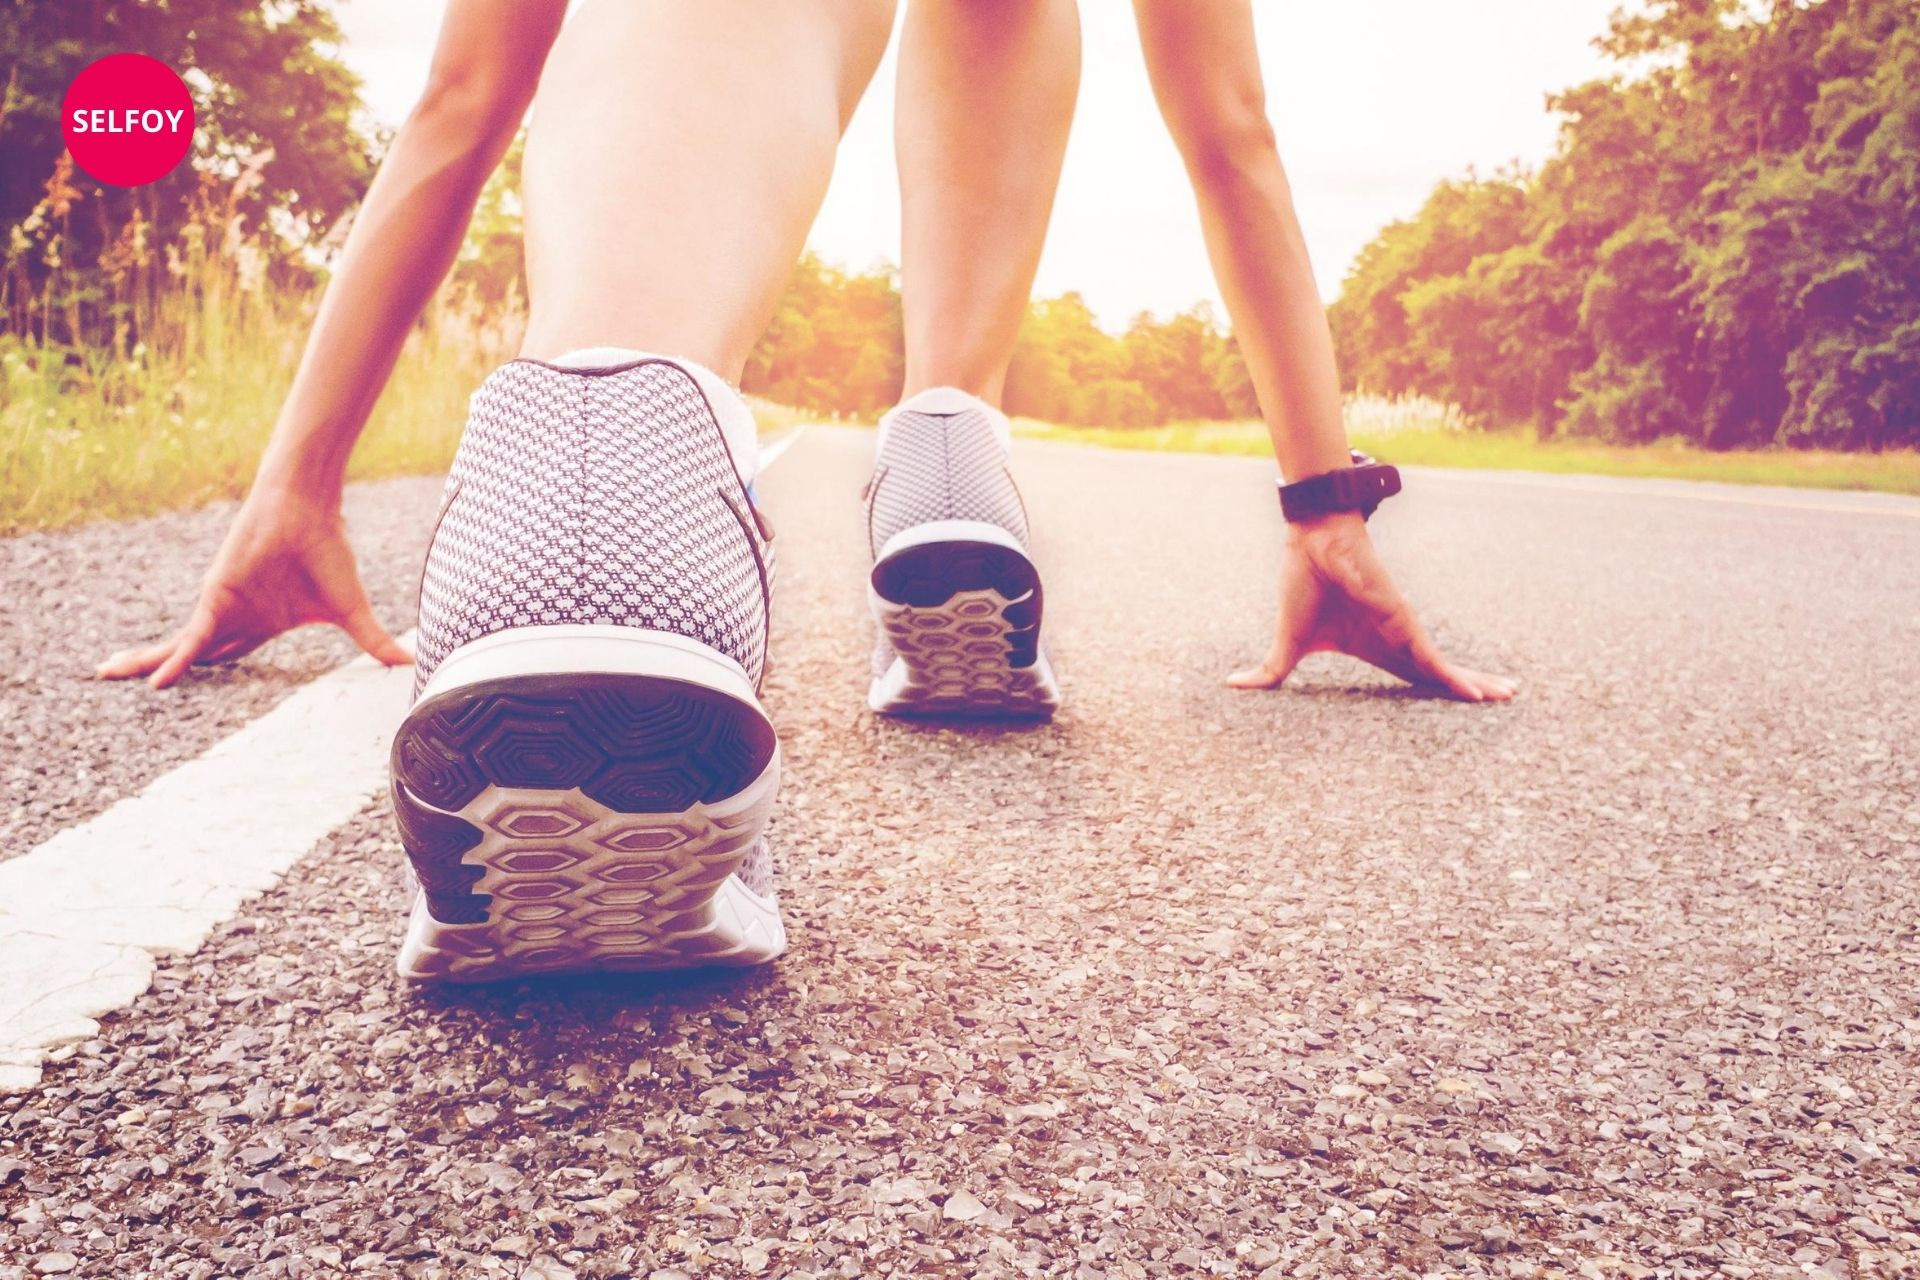 ready to run and maintaining fitness helps boosting self confidence